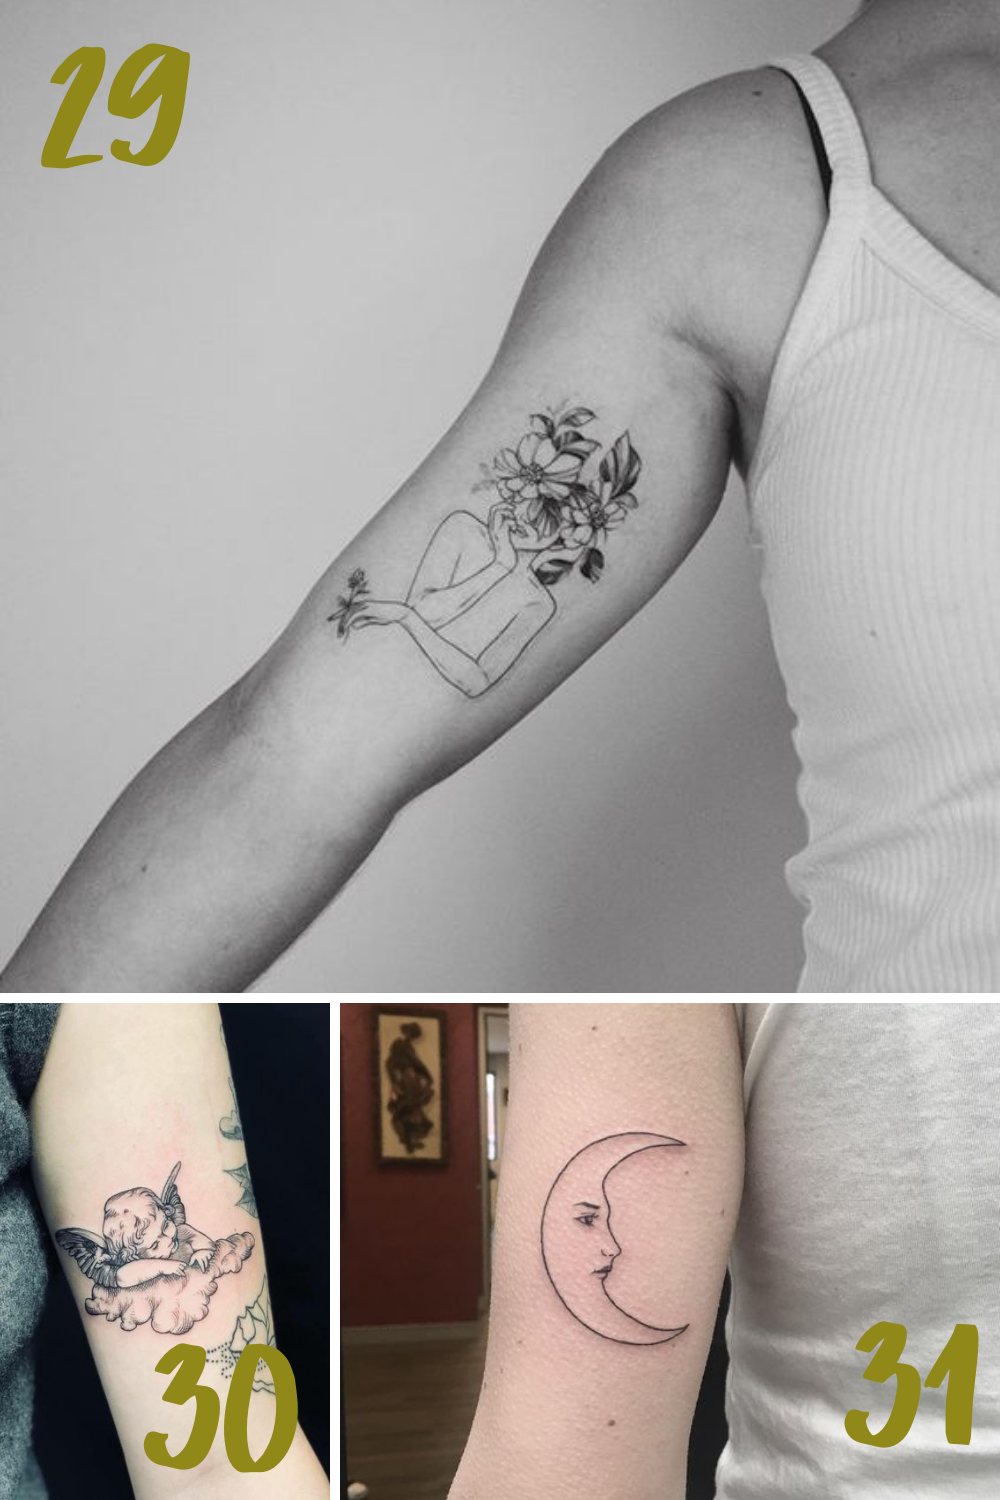 Meaningful Bicep Tattoos